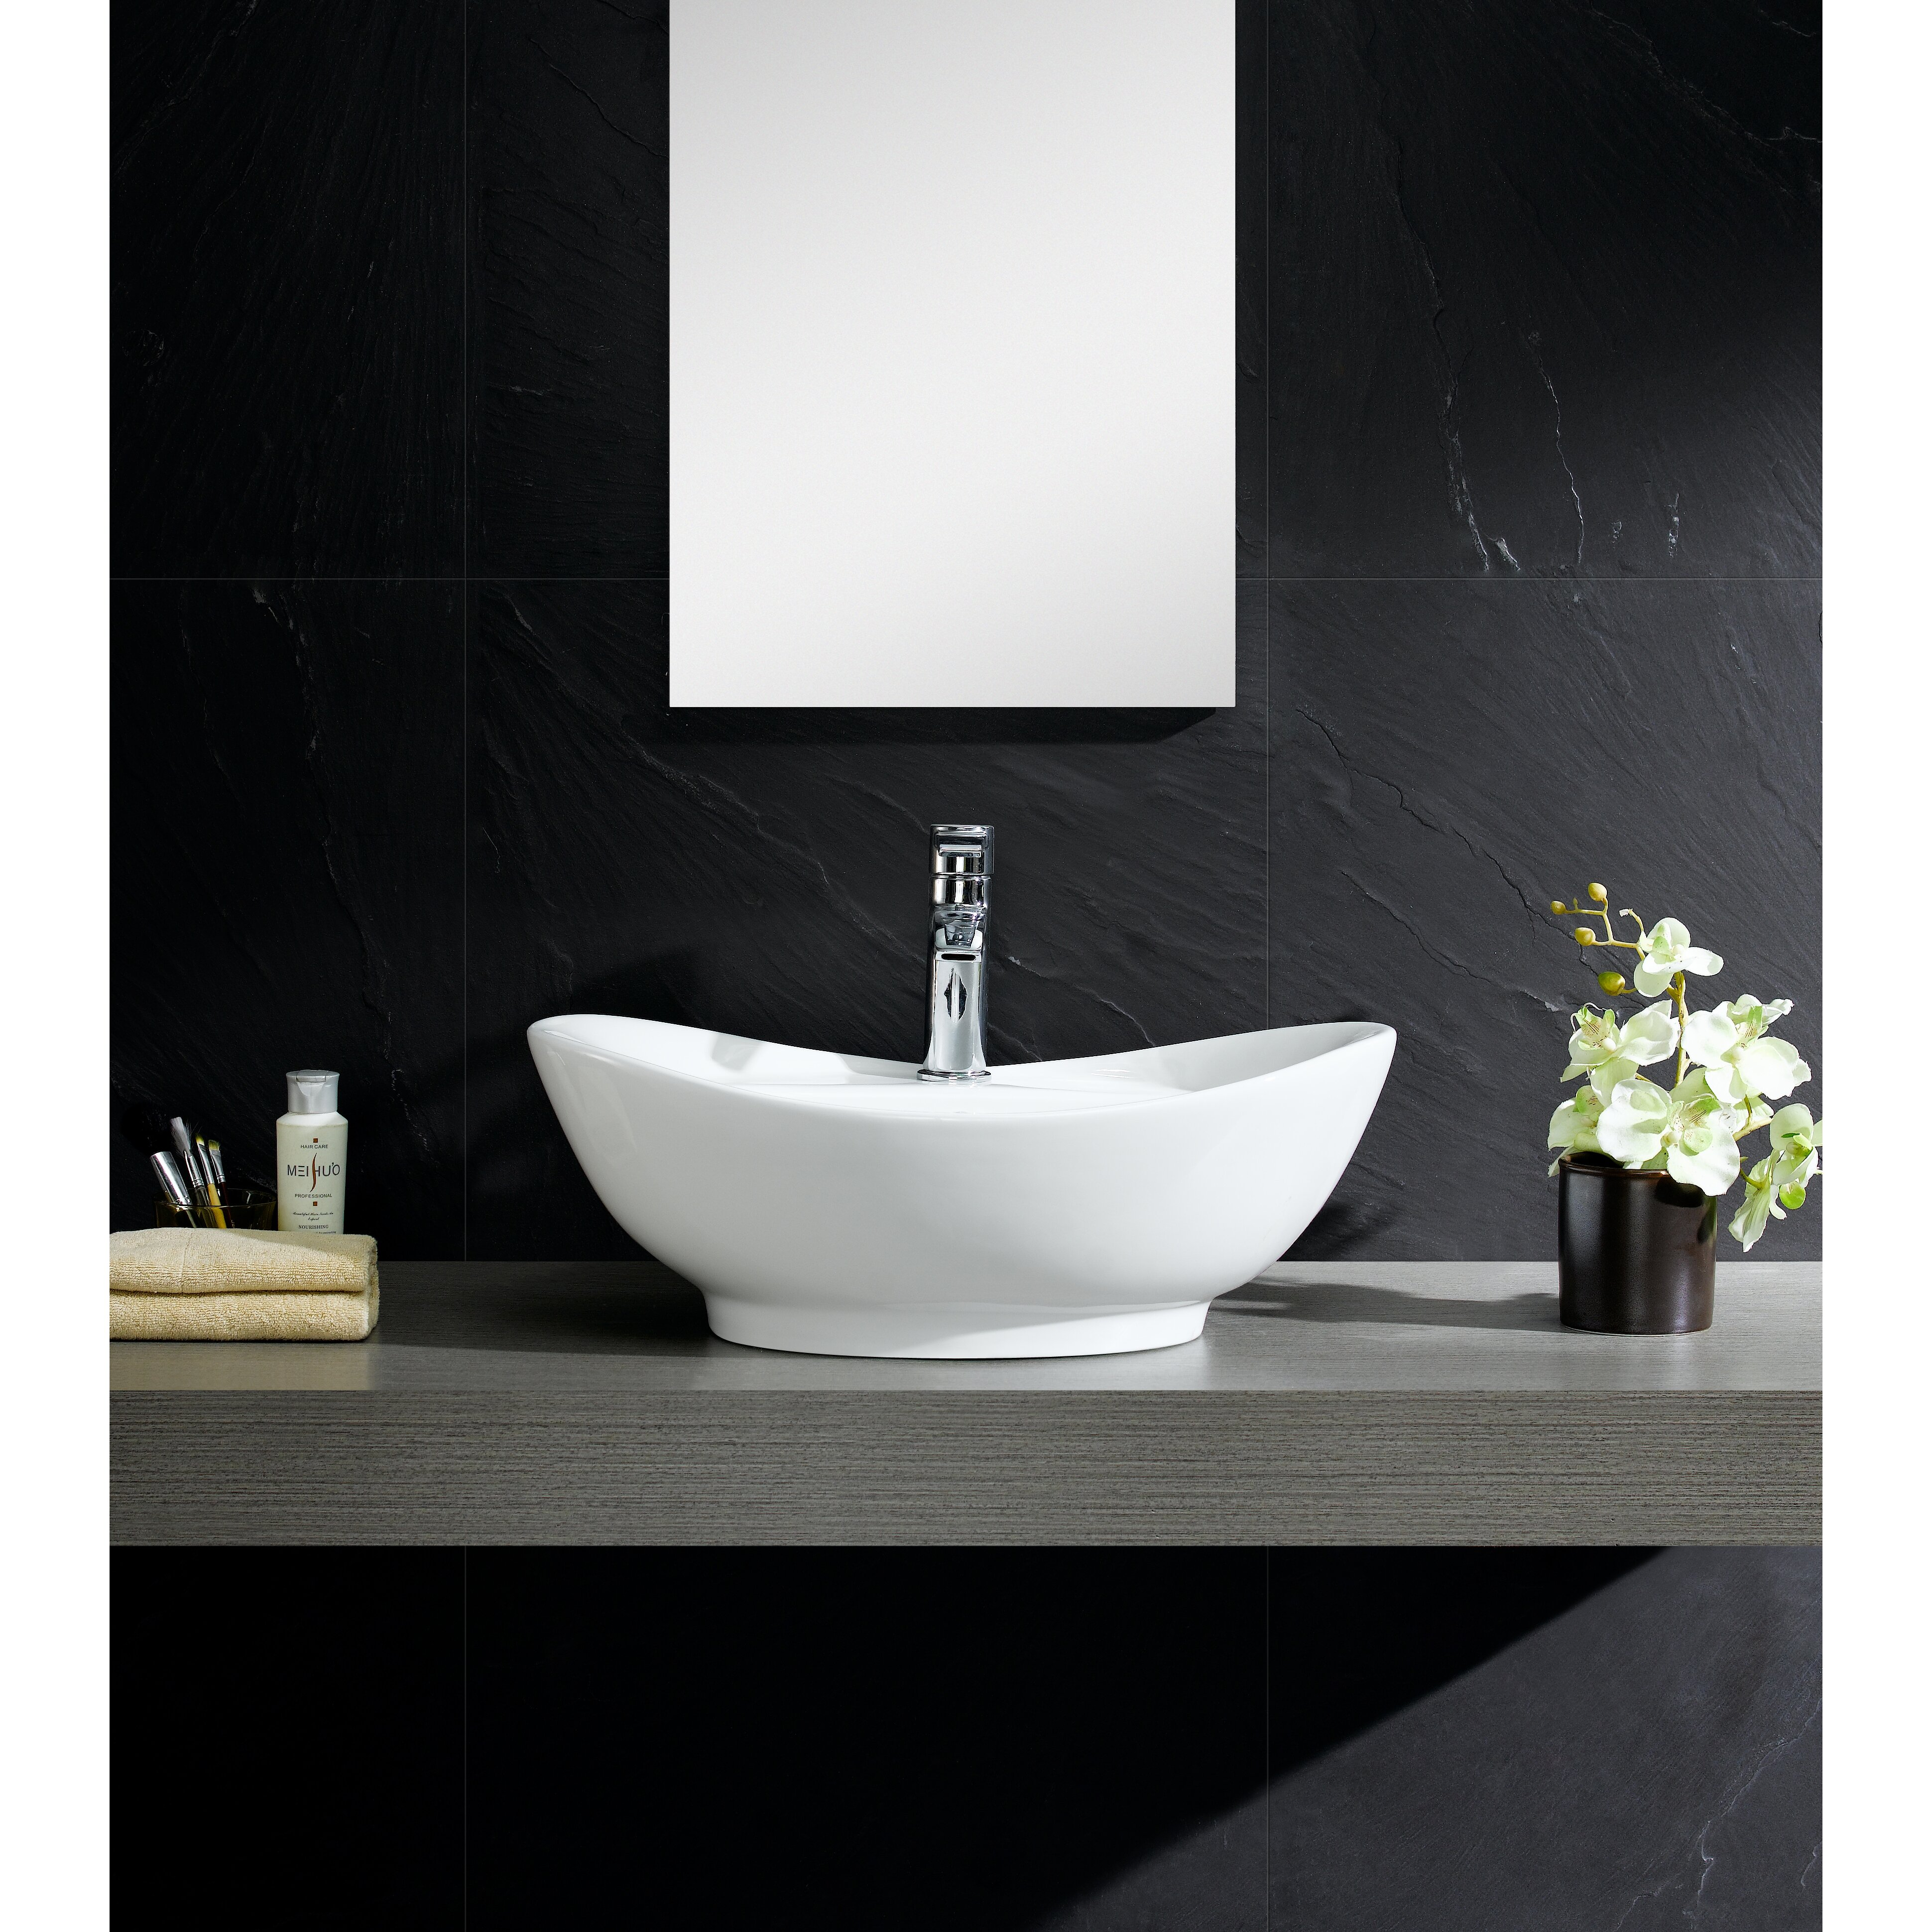 Vessel Sink Overflow : ... Vessel Sink Vessel Bathroom Sink with Overflow & Reviews Wayfair.ca